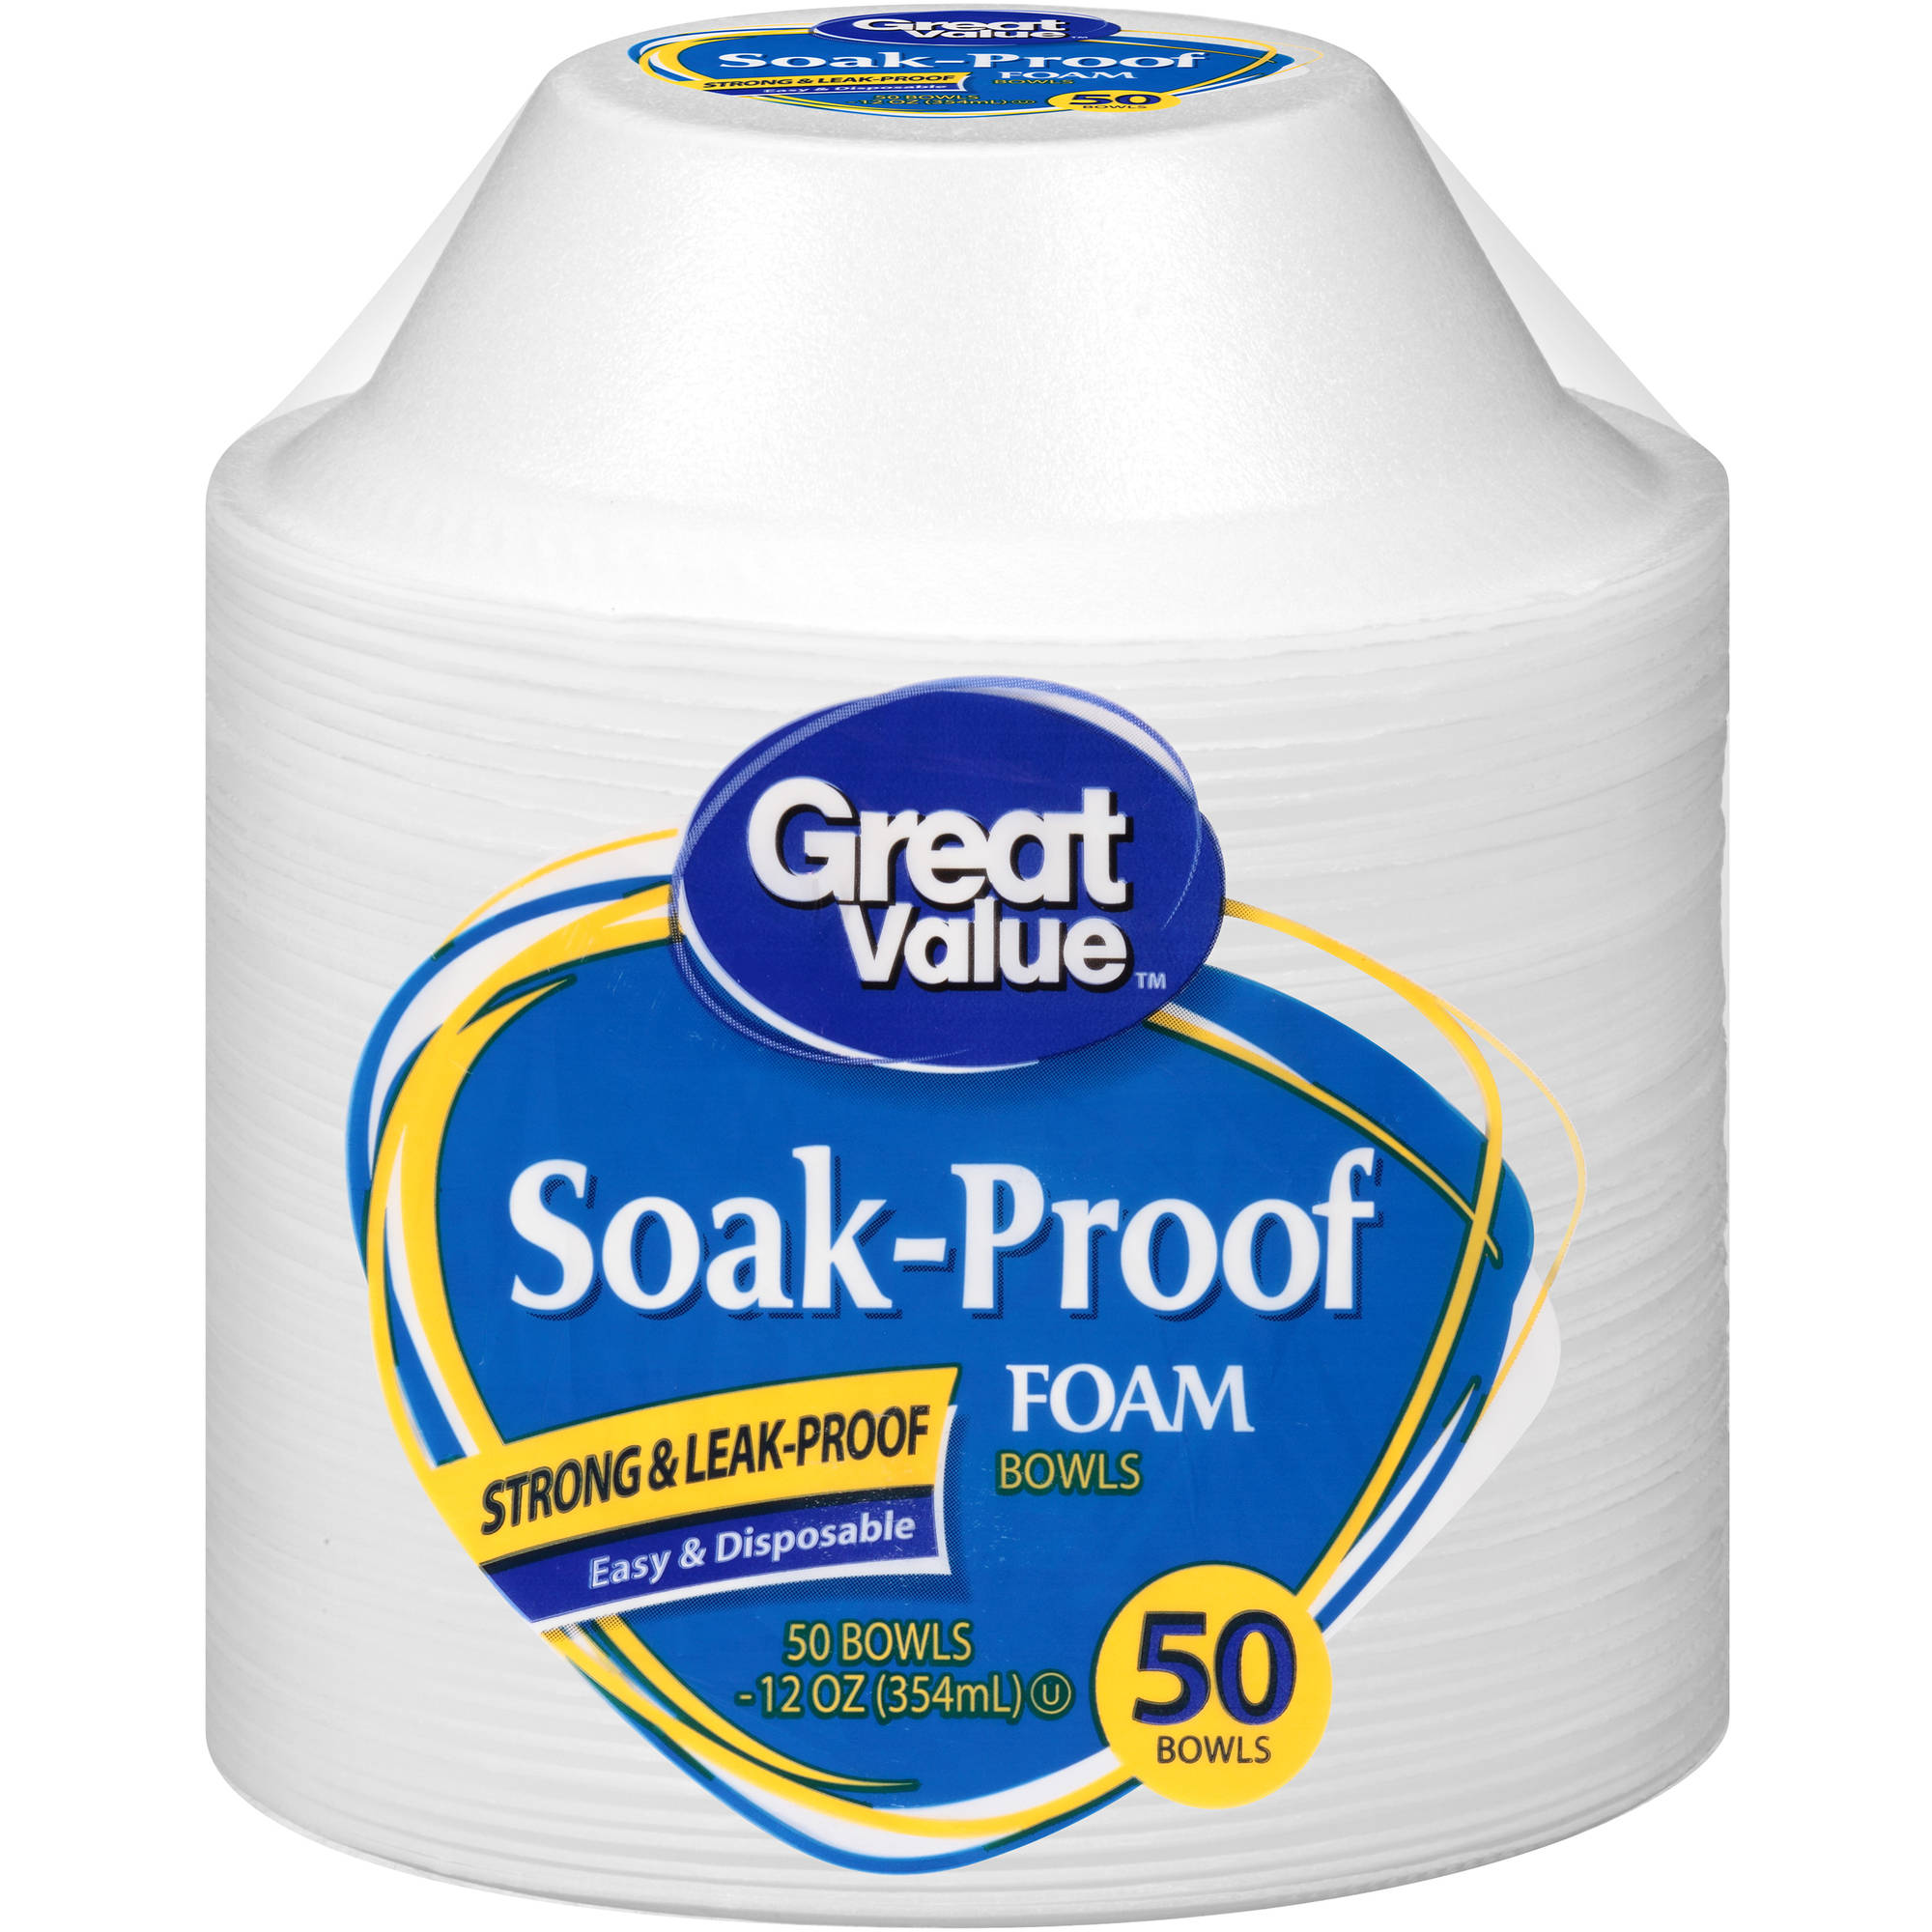 Great Value 12oz Soak Proof Foam Bowls, 50ct